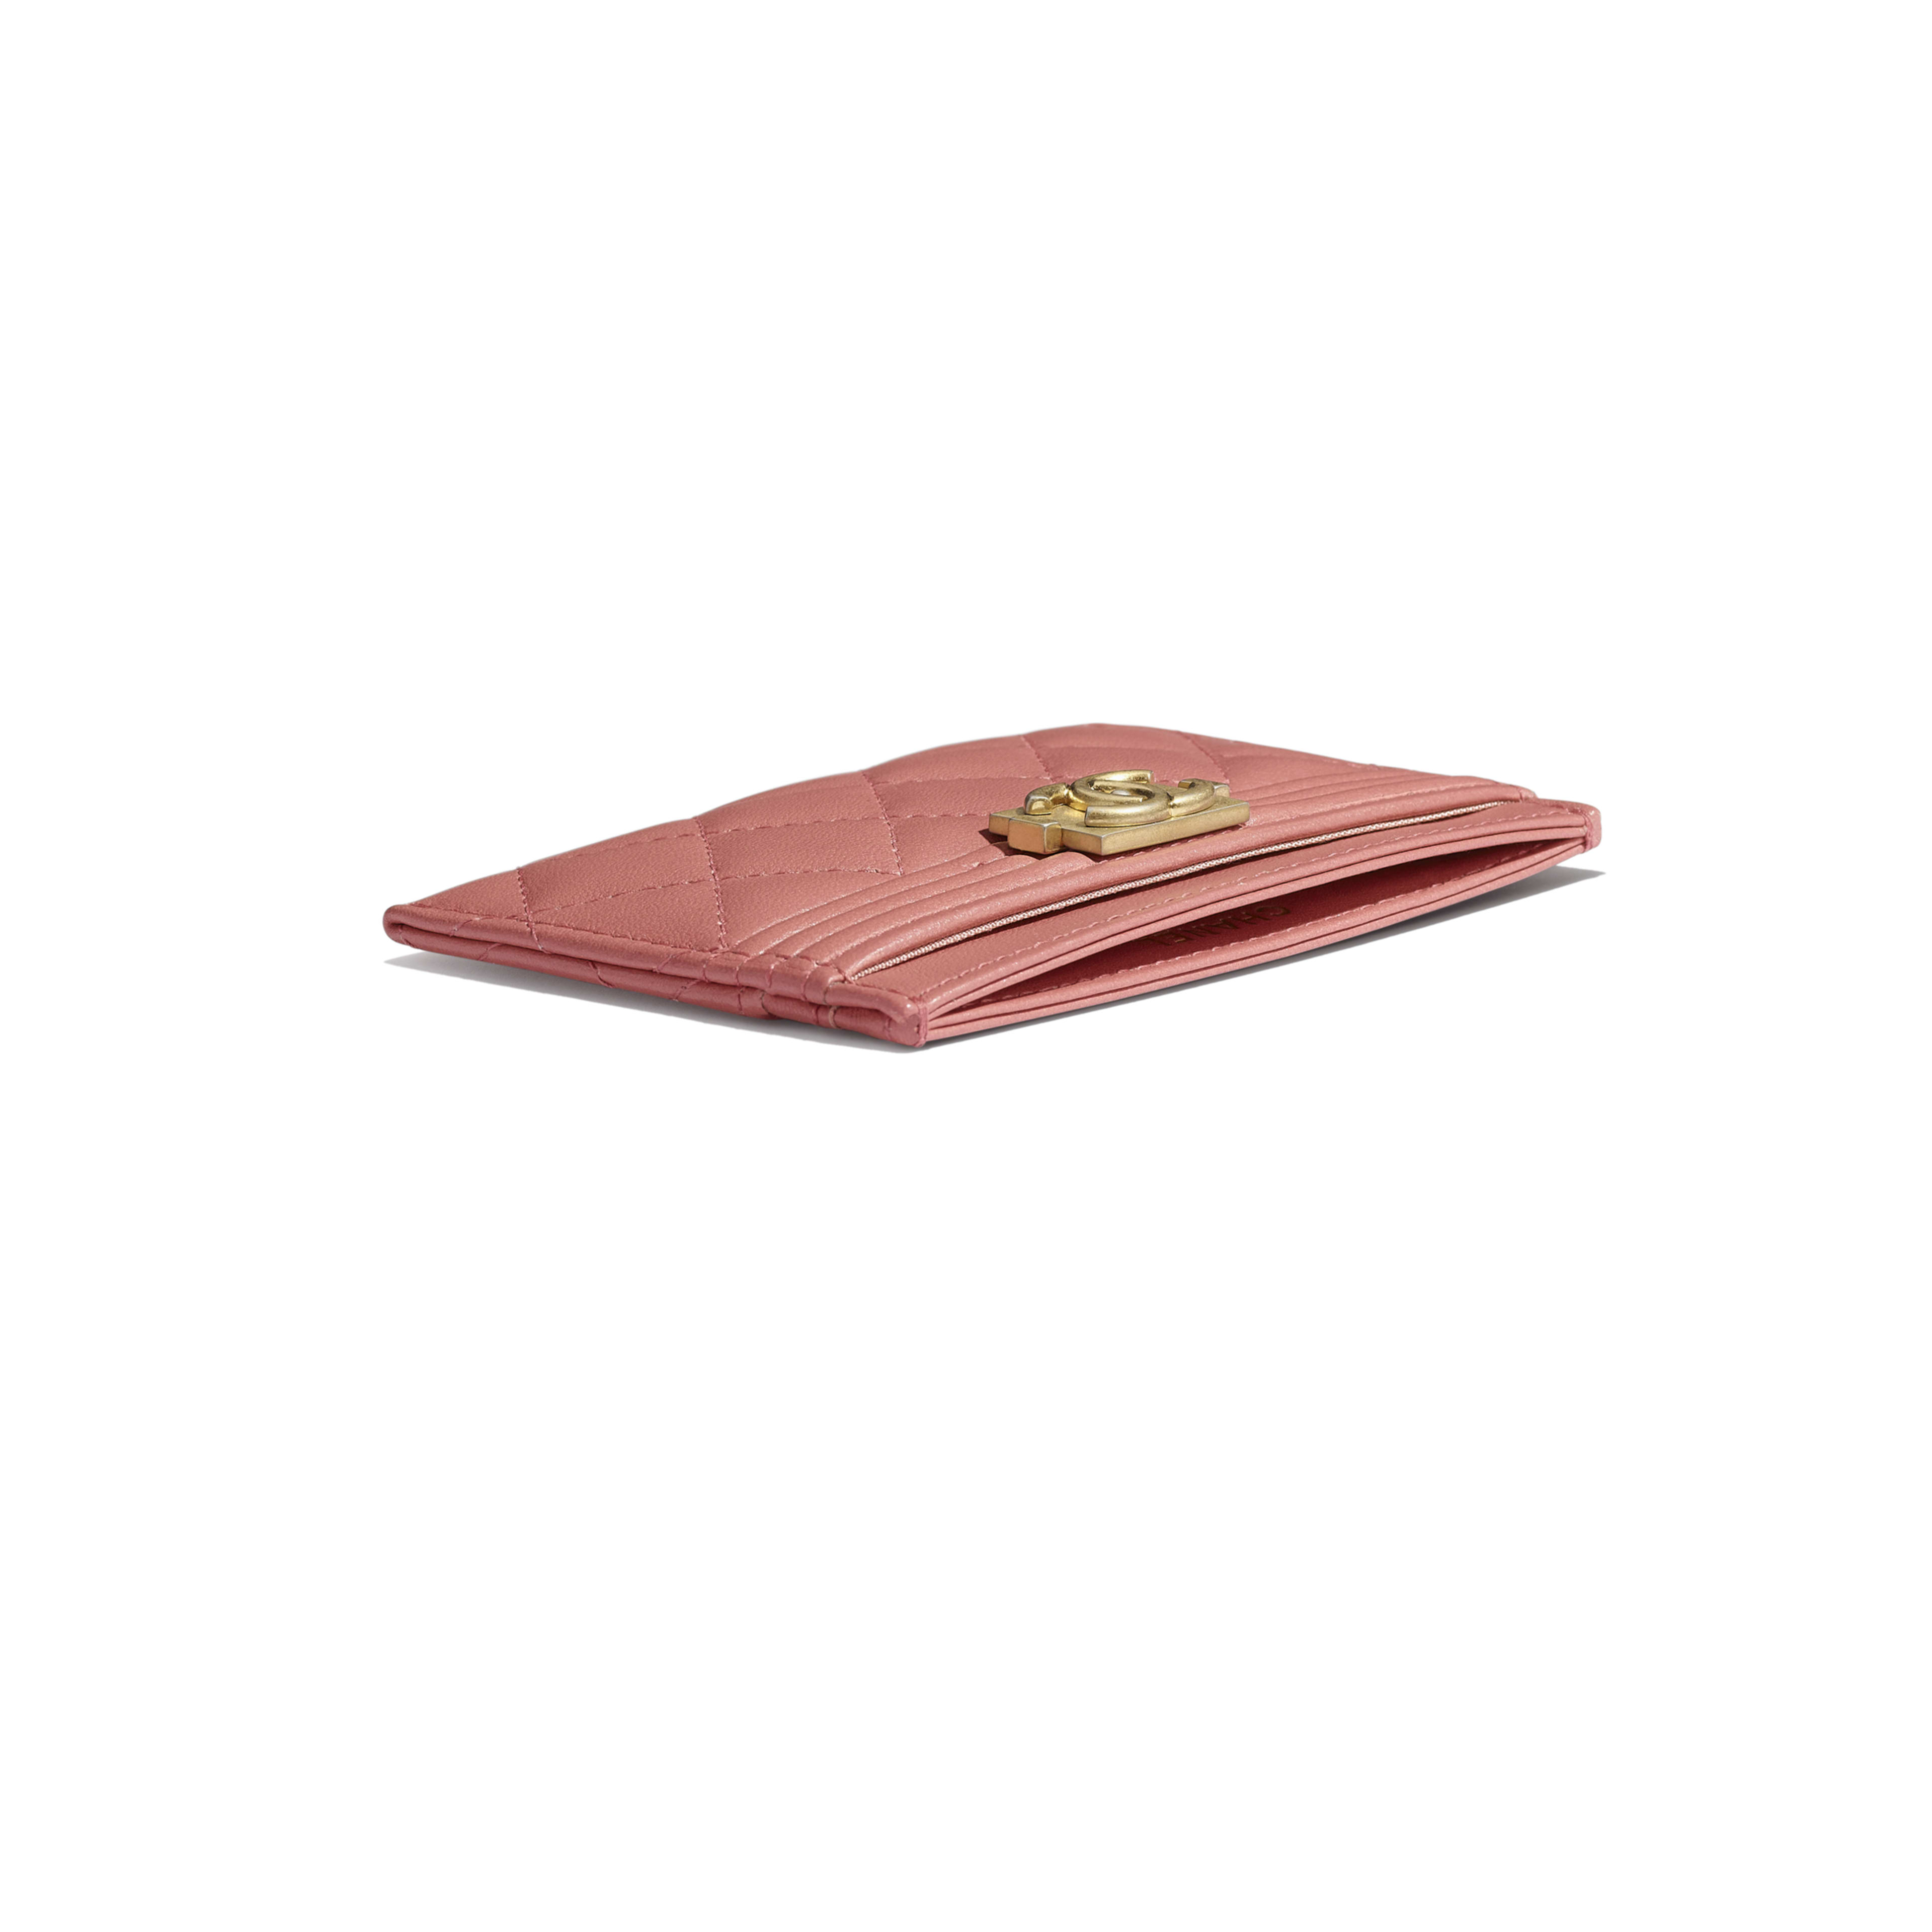 BOY CHANEL Card Holder - Pink - Lambskin - Extra view - see full sized version